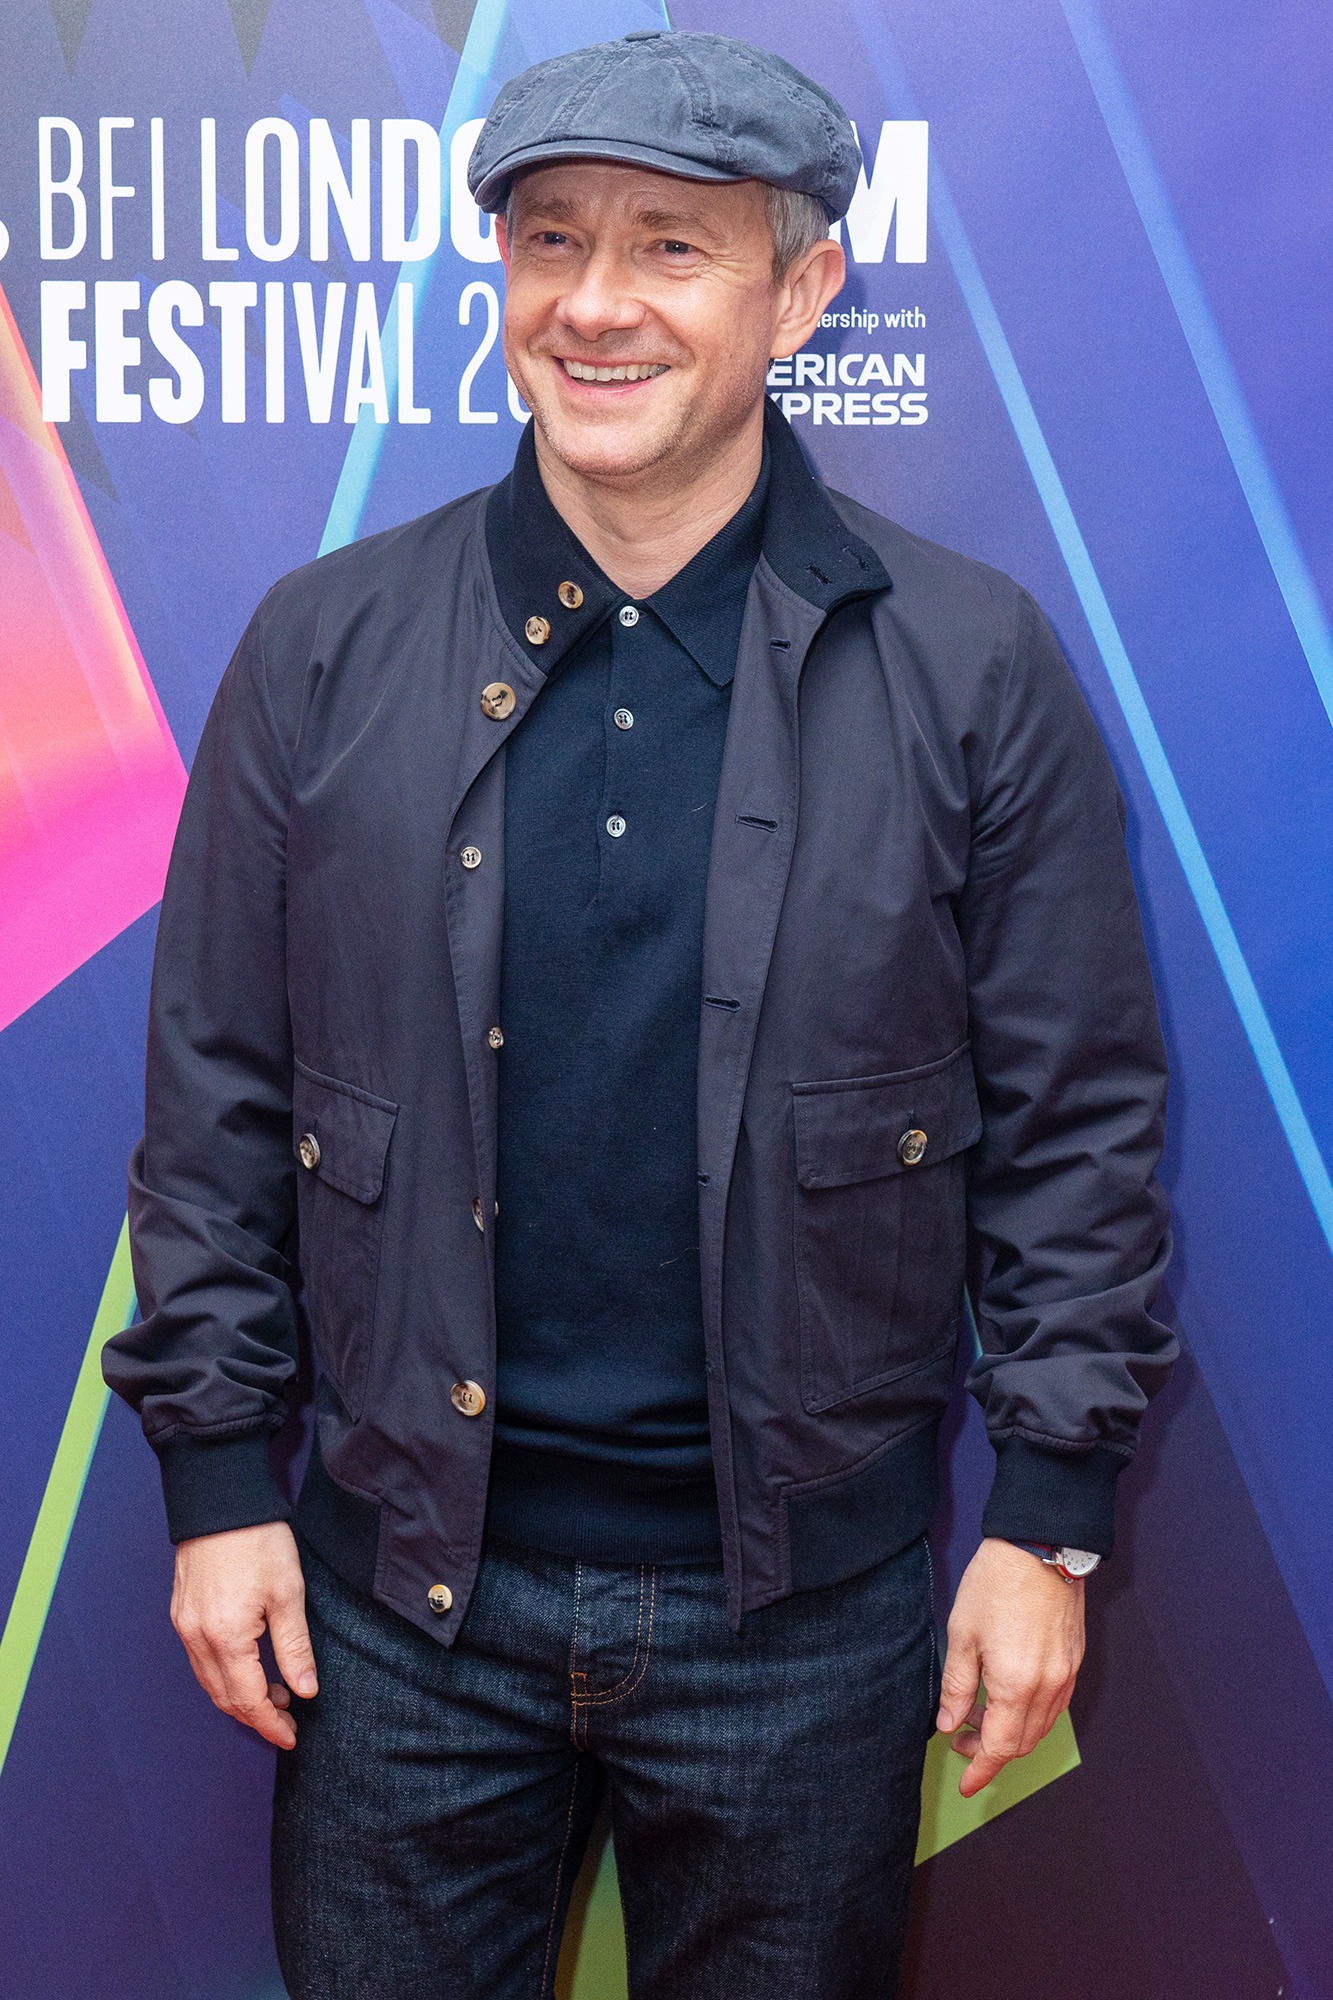 Martin Freeman arriving for the UK premiere of 'Boiling Point', at the Odeon Luxe West End cinema in London during the BFI London Film Festival.